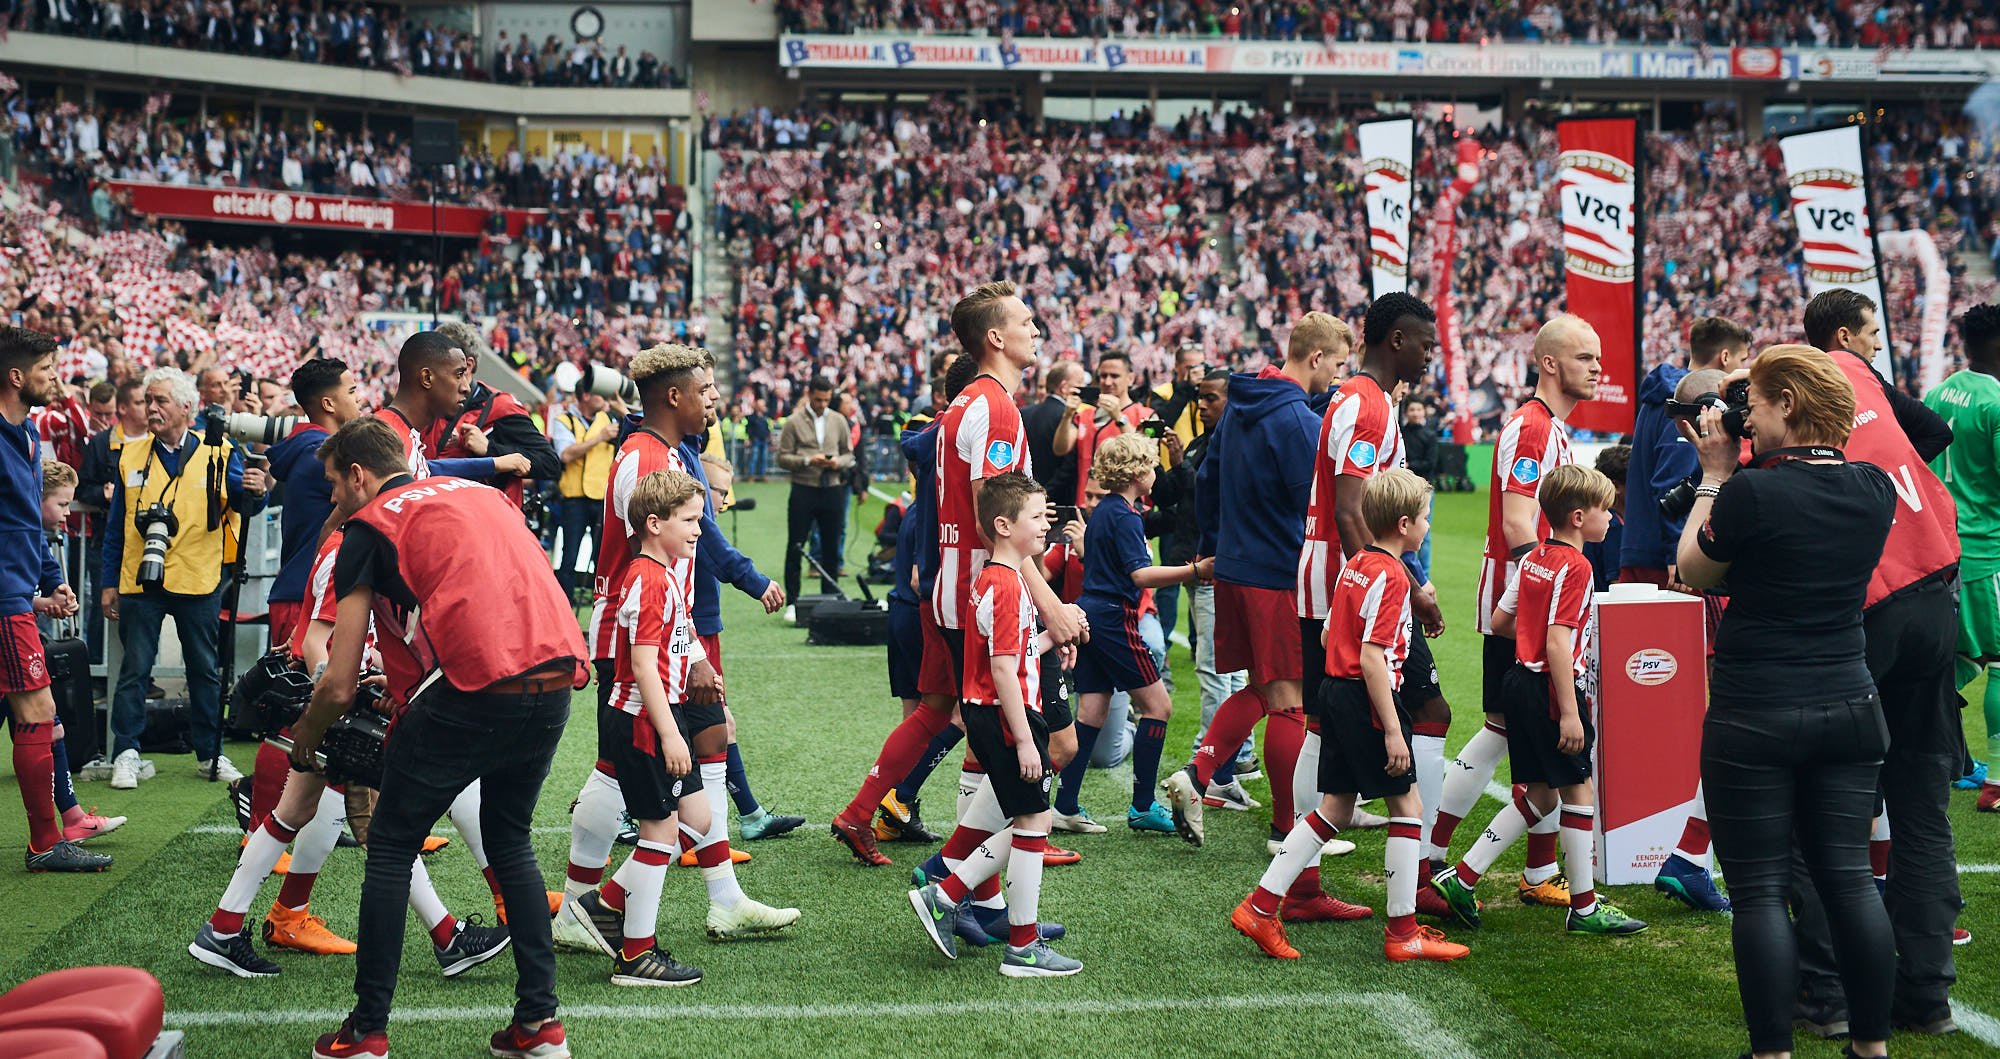 Football players entering the pitch of the Philips Stadium in Eindhoven